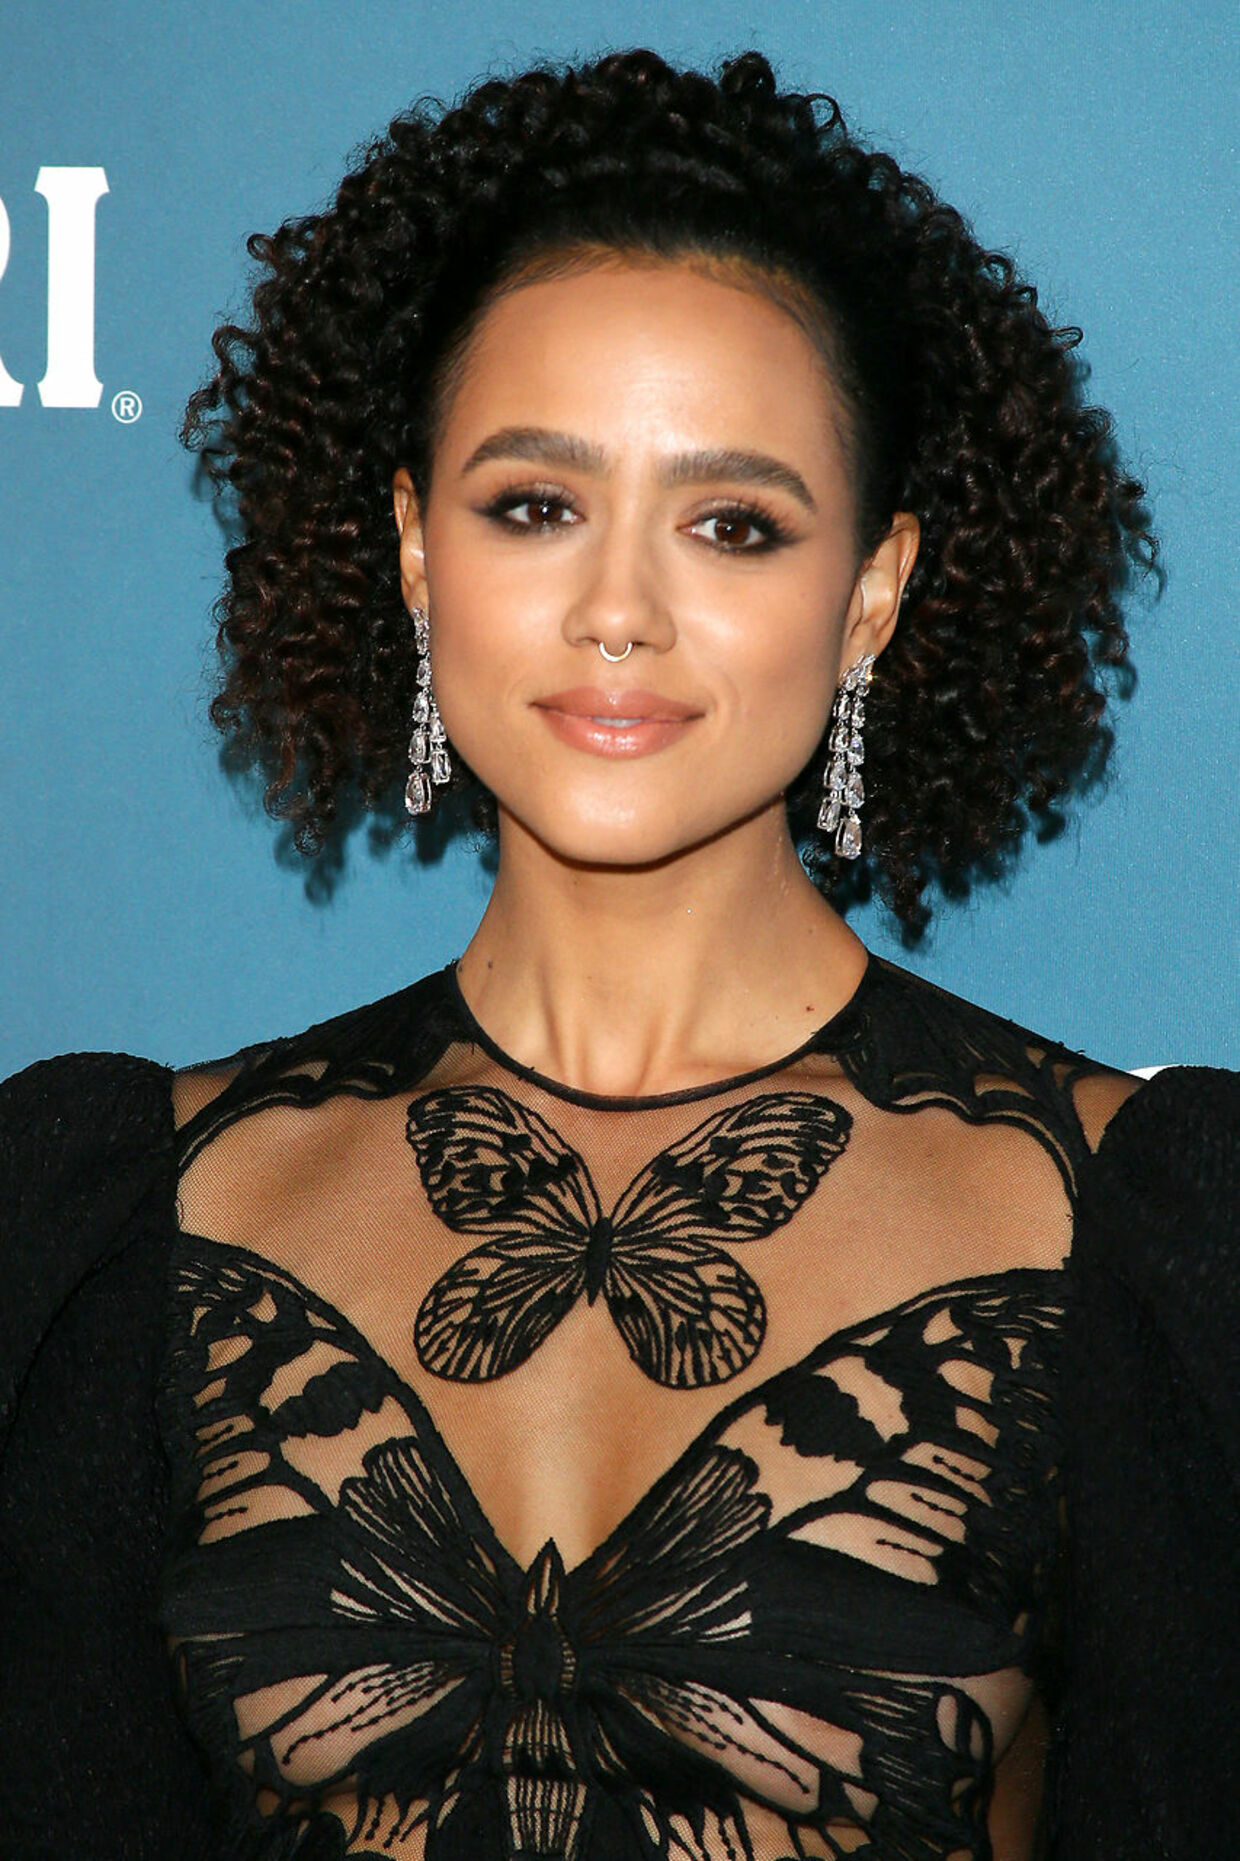 British actress Nathalie Emmanuel attends the 22nd Costume Designers Guild Awards in Beverly Hills on January 28, 2020. Jean-Baptiste Lacroix / AFP